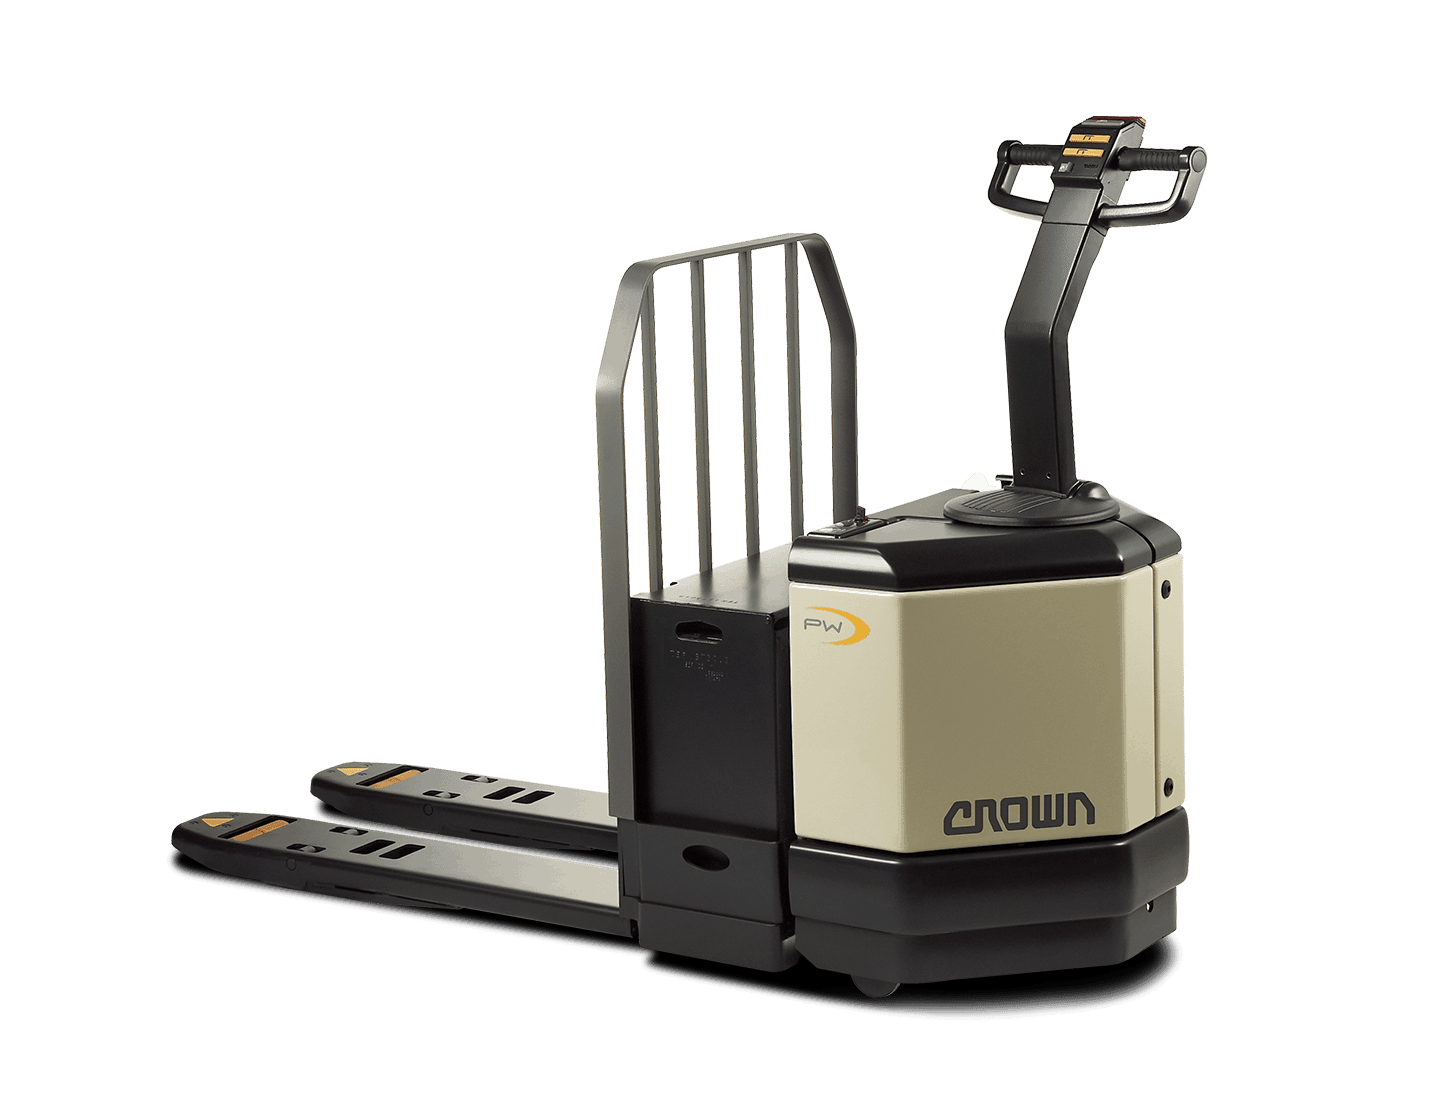 crown pw 3500 forklift service manual